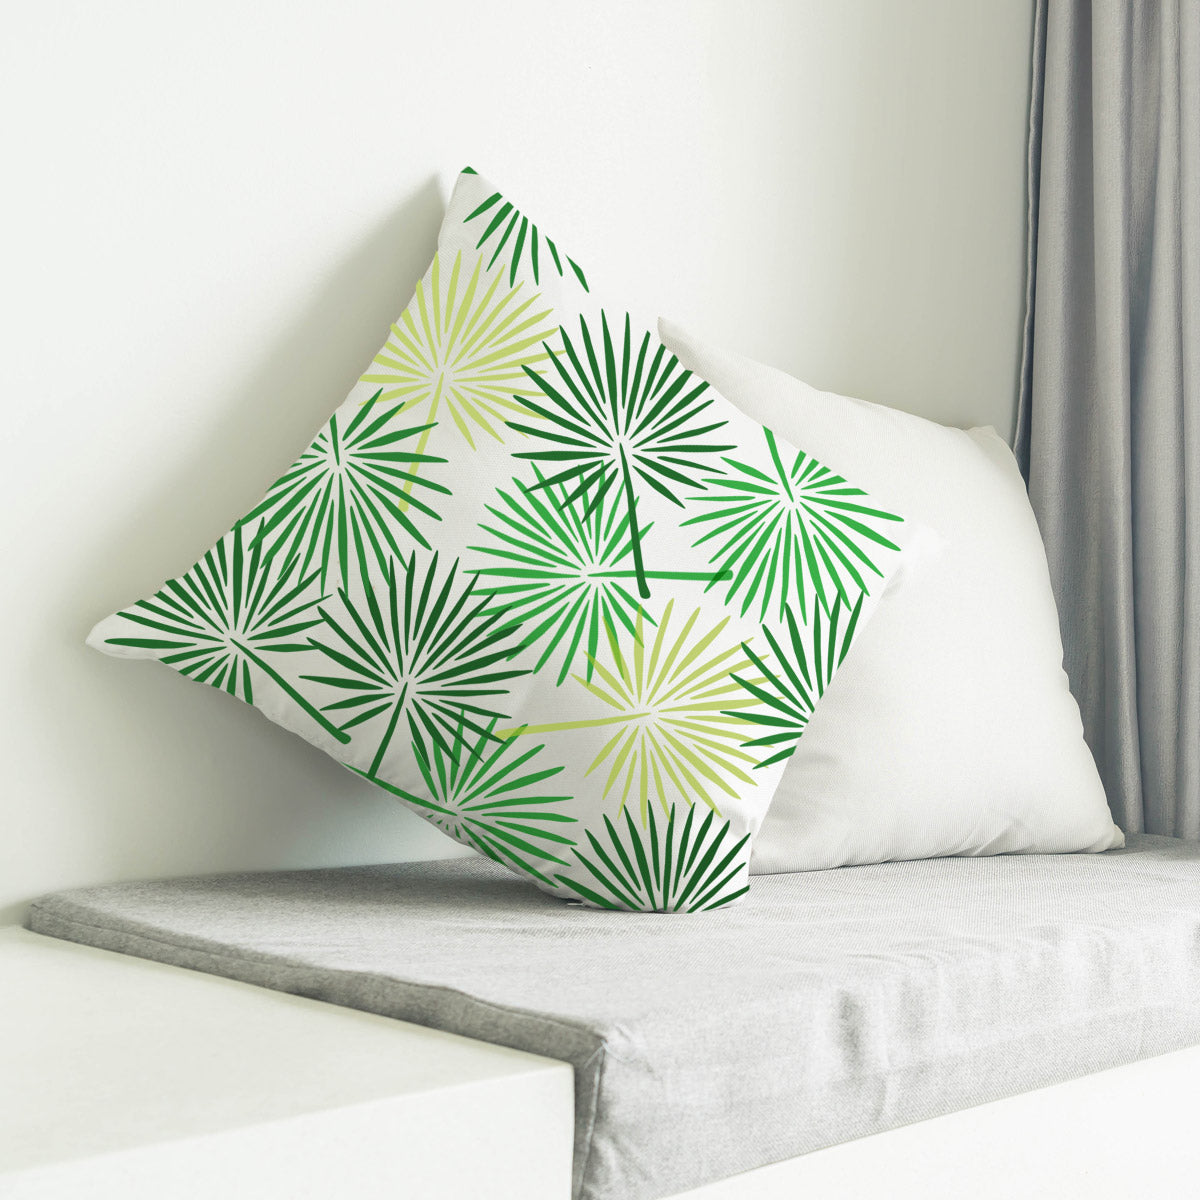 CraftStar Fan Palm Leaf Stencil on fabric